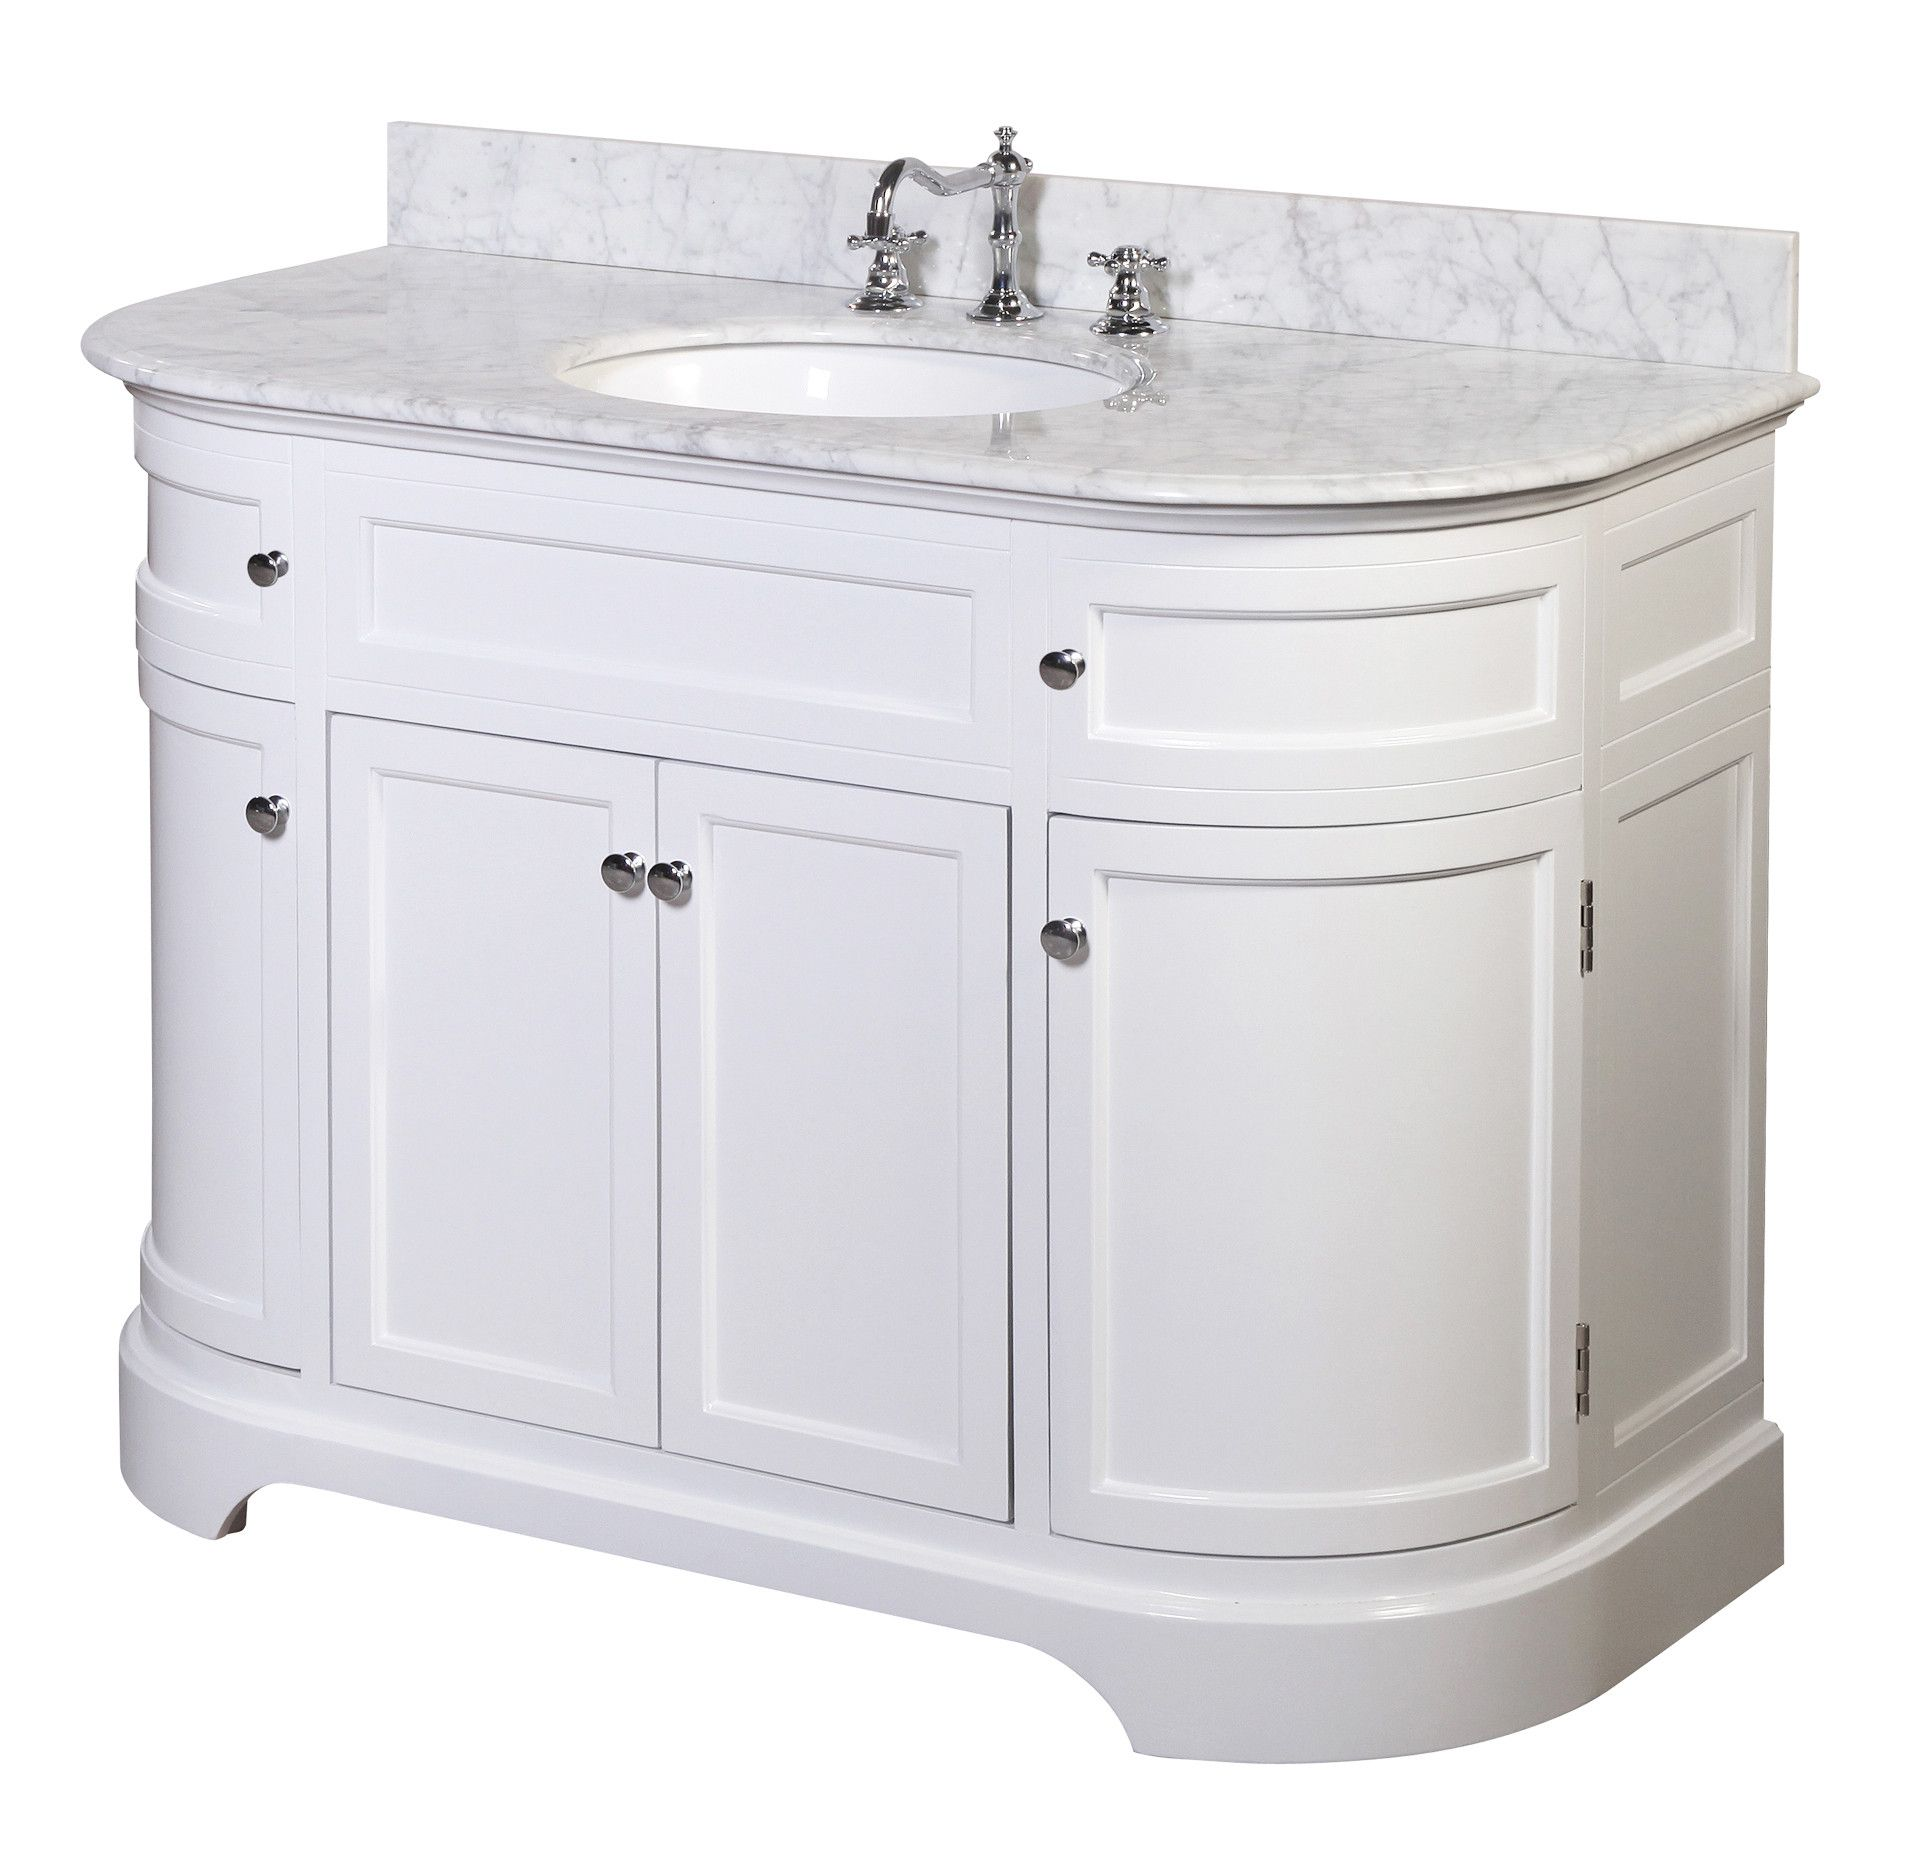 Carrara Charcoal Gray Includes Charcoal Gray Cabinet With Authentic Italian Carrara Marble Countertop And White Ceramic Sink Katherine 42 Inch Bathroom Vanity Bathroom Vanities Tools Home Improvement